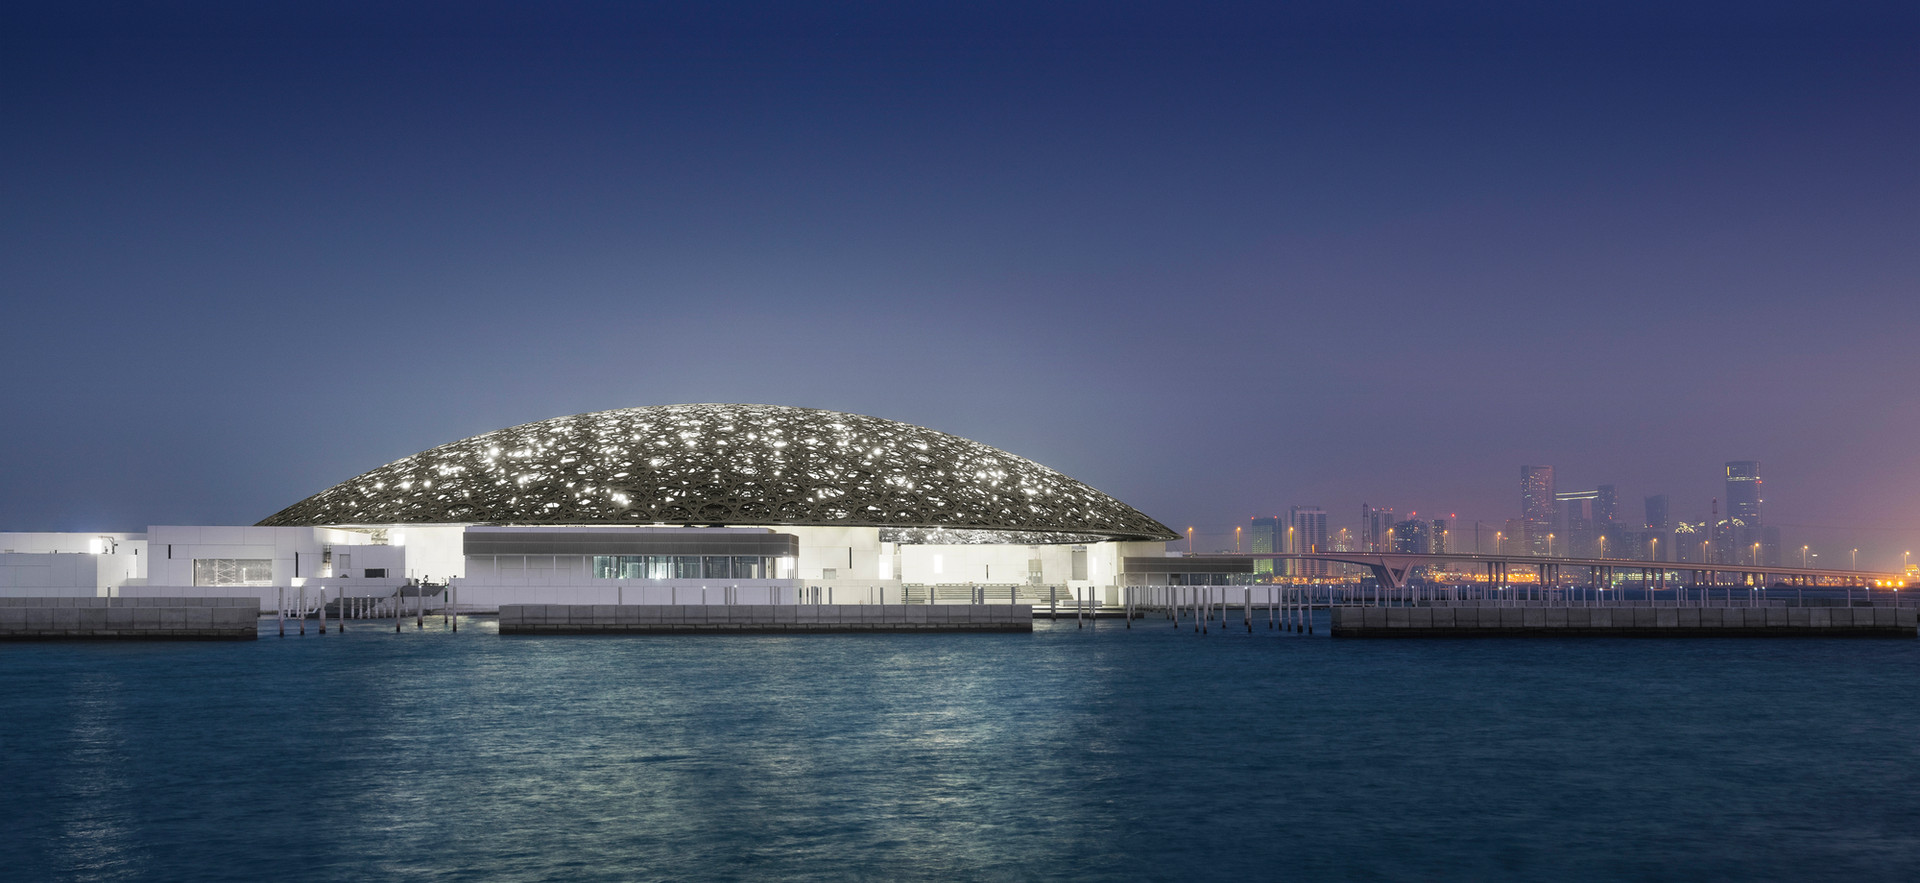 The Louvre, Abu Dhabi, UAE